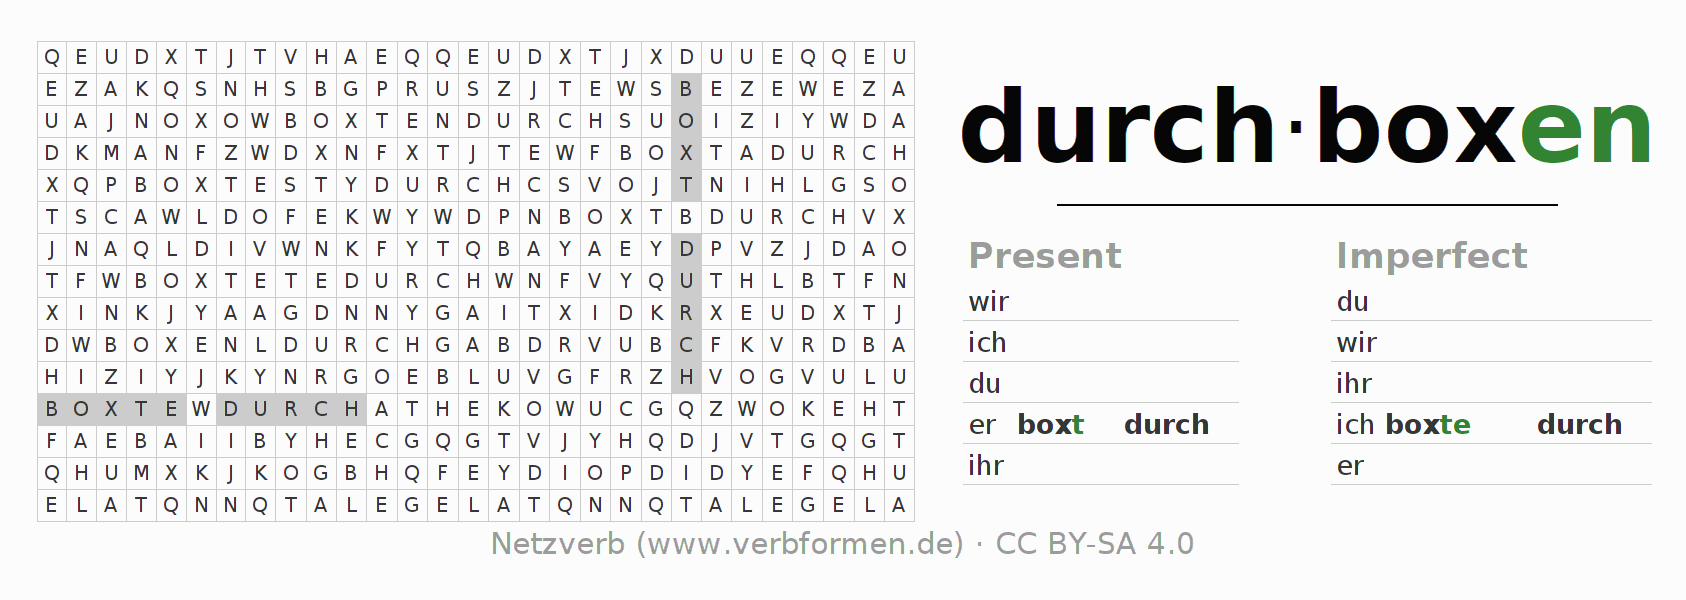 Word search puzzle for the conjugation of the verb durchboxen